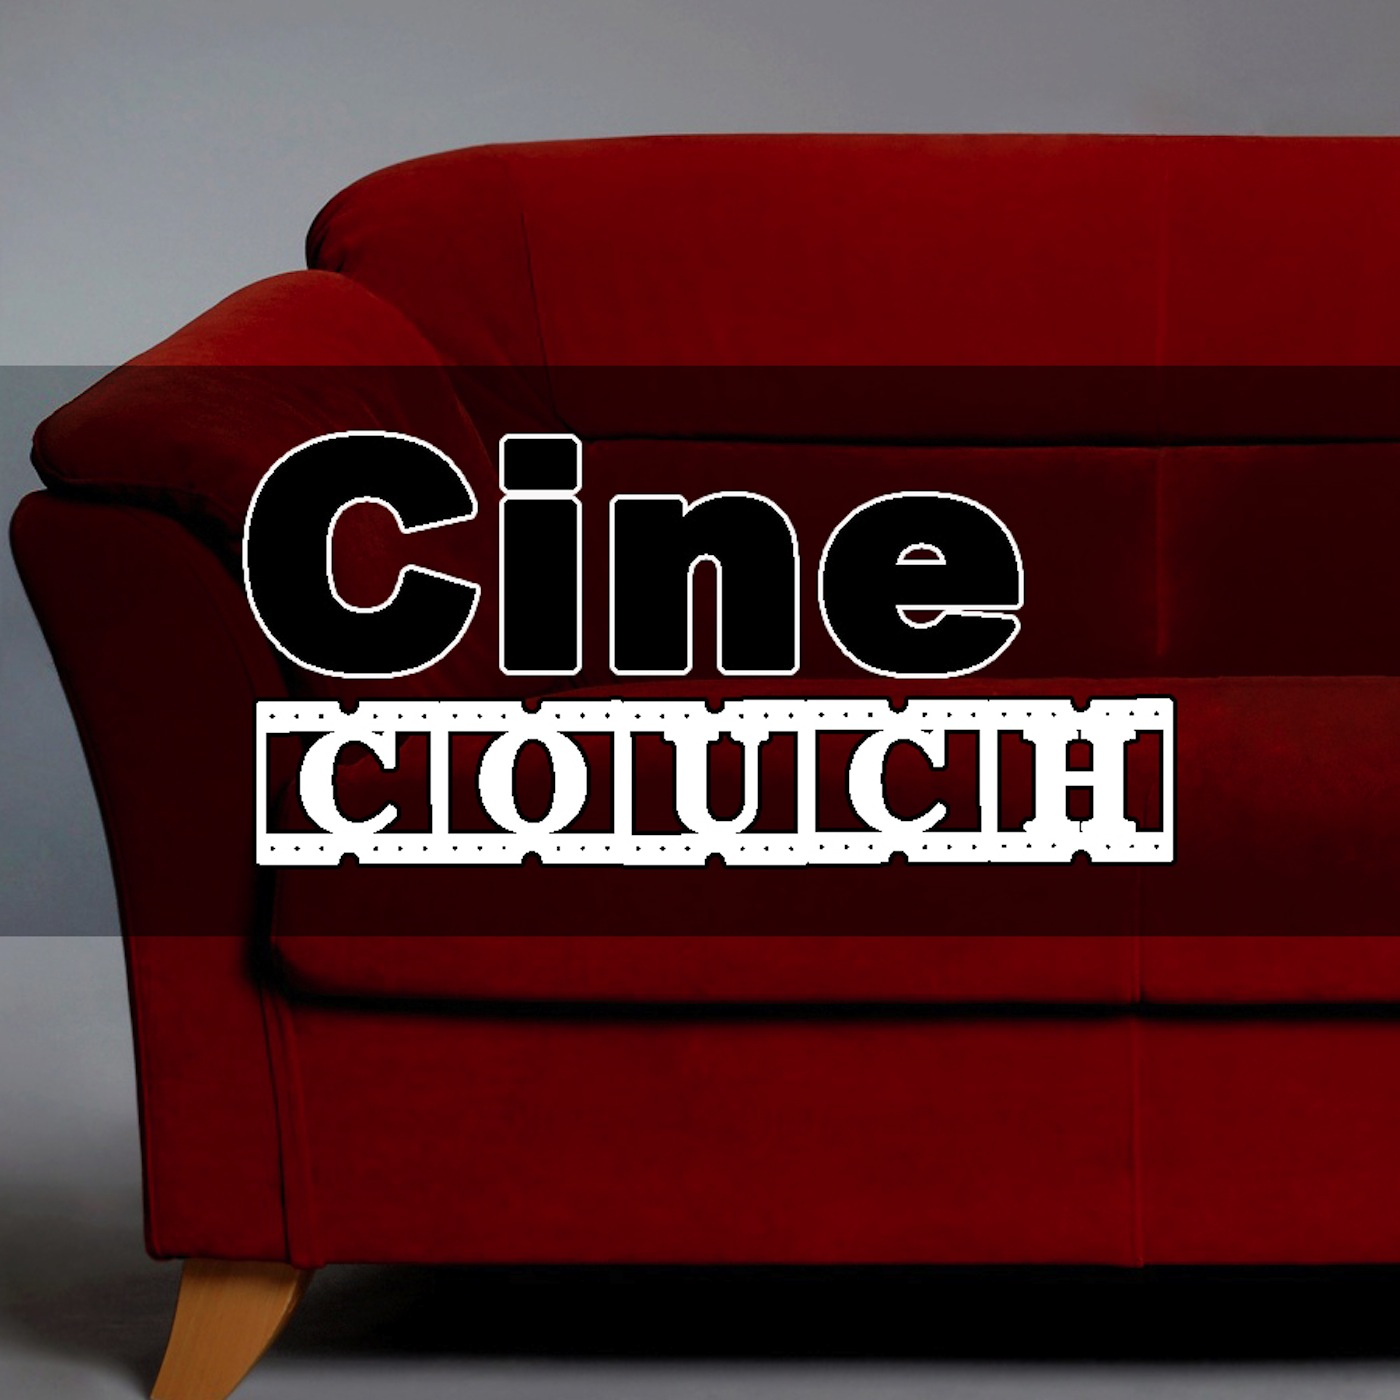 CineCouch – Folge 249: Indiana Jones and the Kingdom of the Crystal Skull